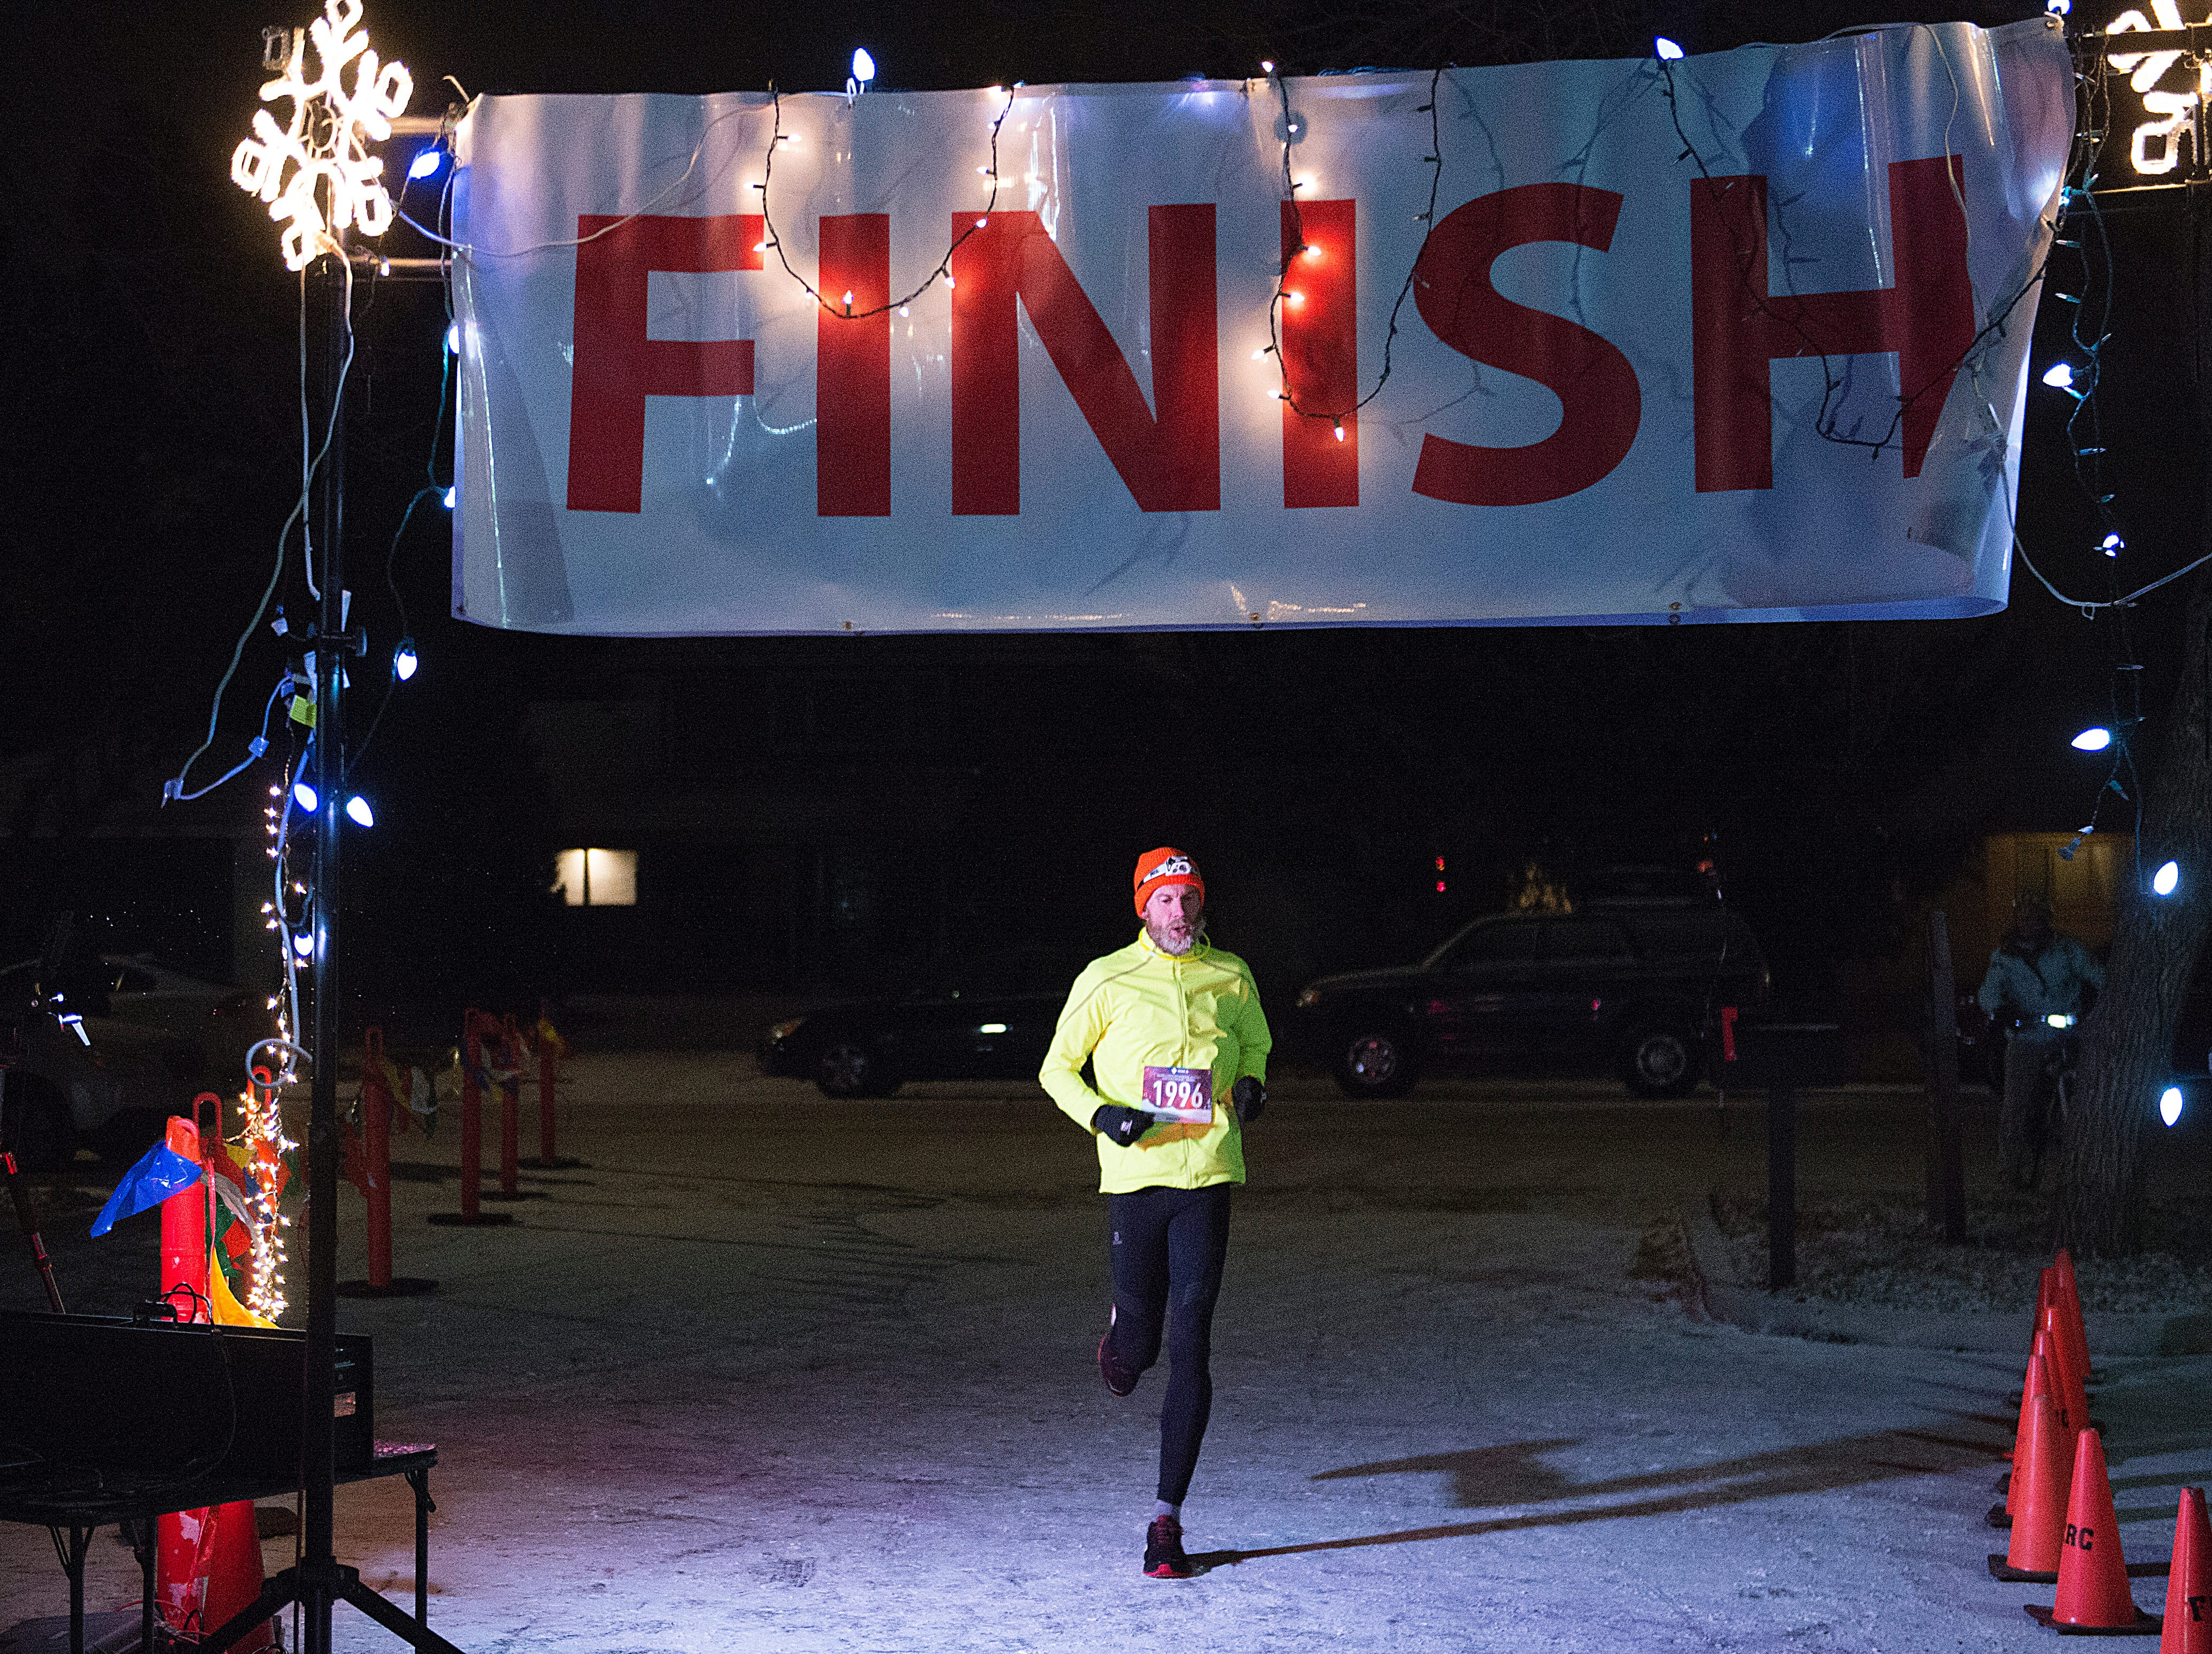 Race winner Stephen Pretak crosses the finish line for the Resolution Run 5K at Our Saviour's Lutheran Church on December 31, 2018. People braved single-digit temperatures to ring in the new year with the run.